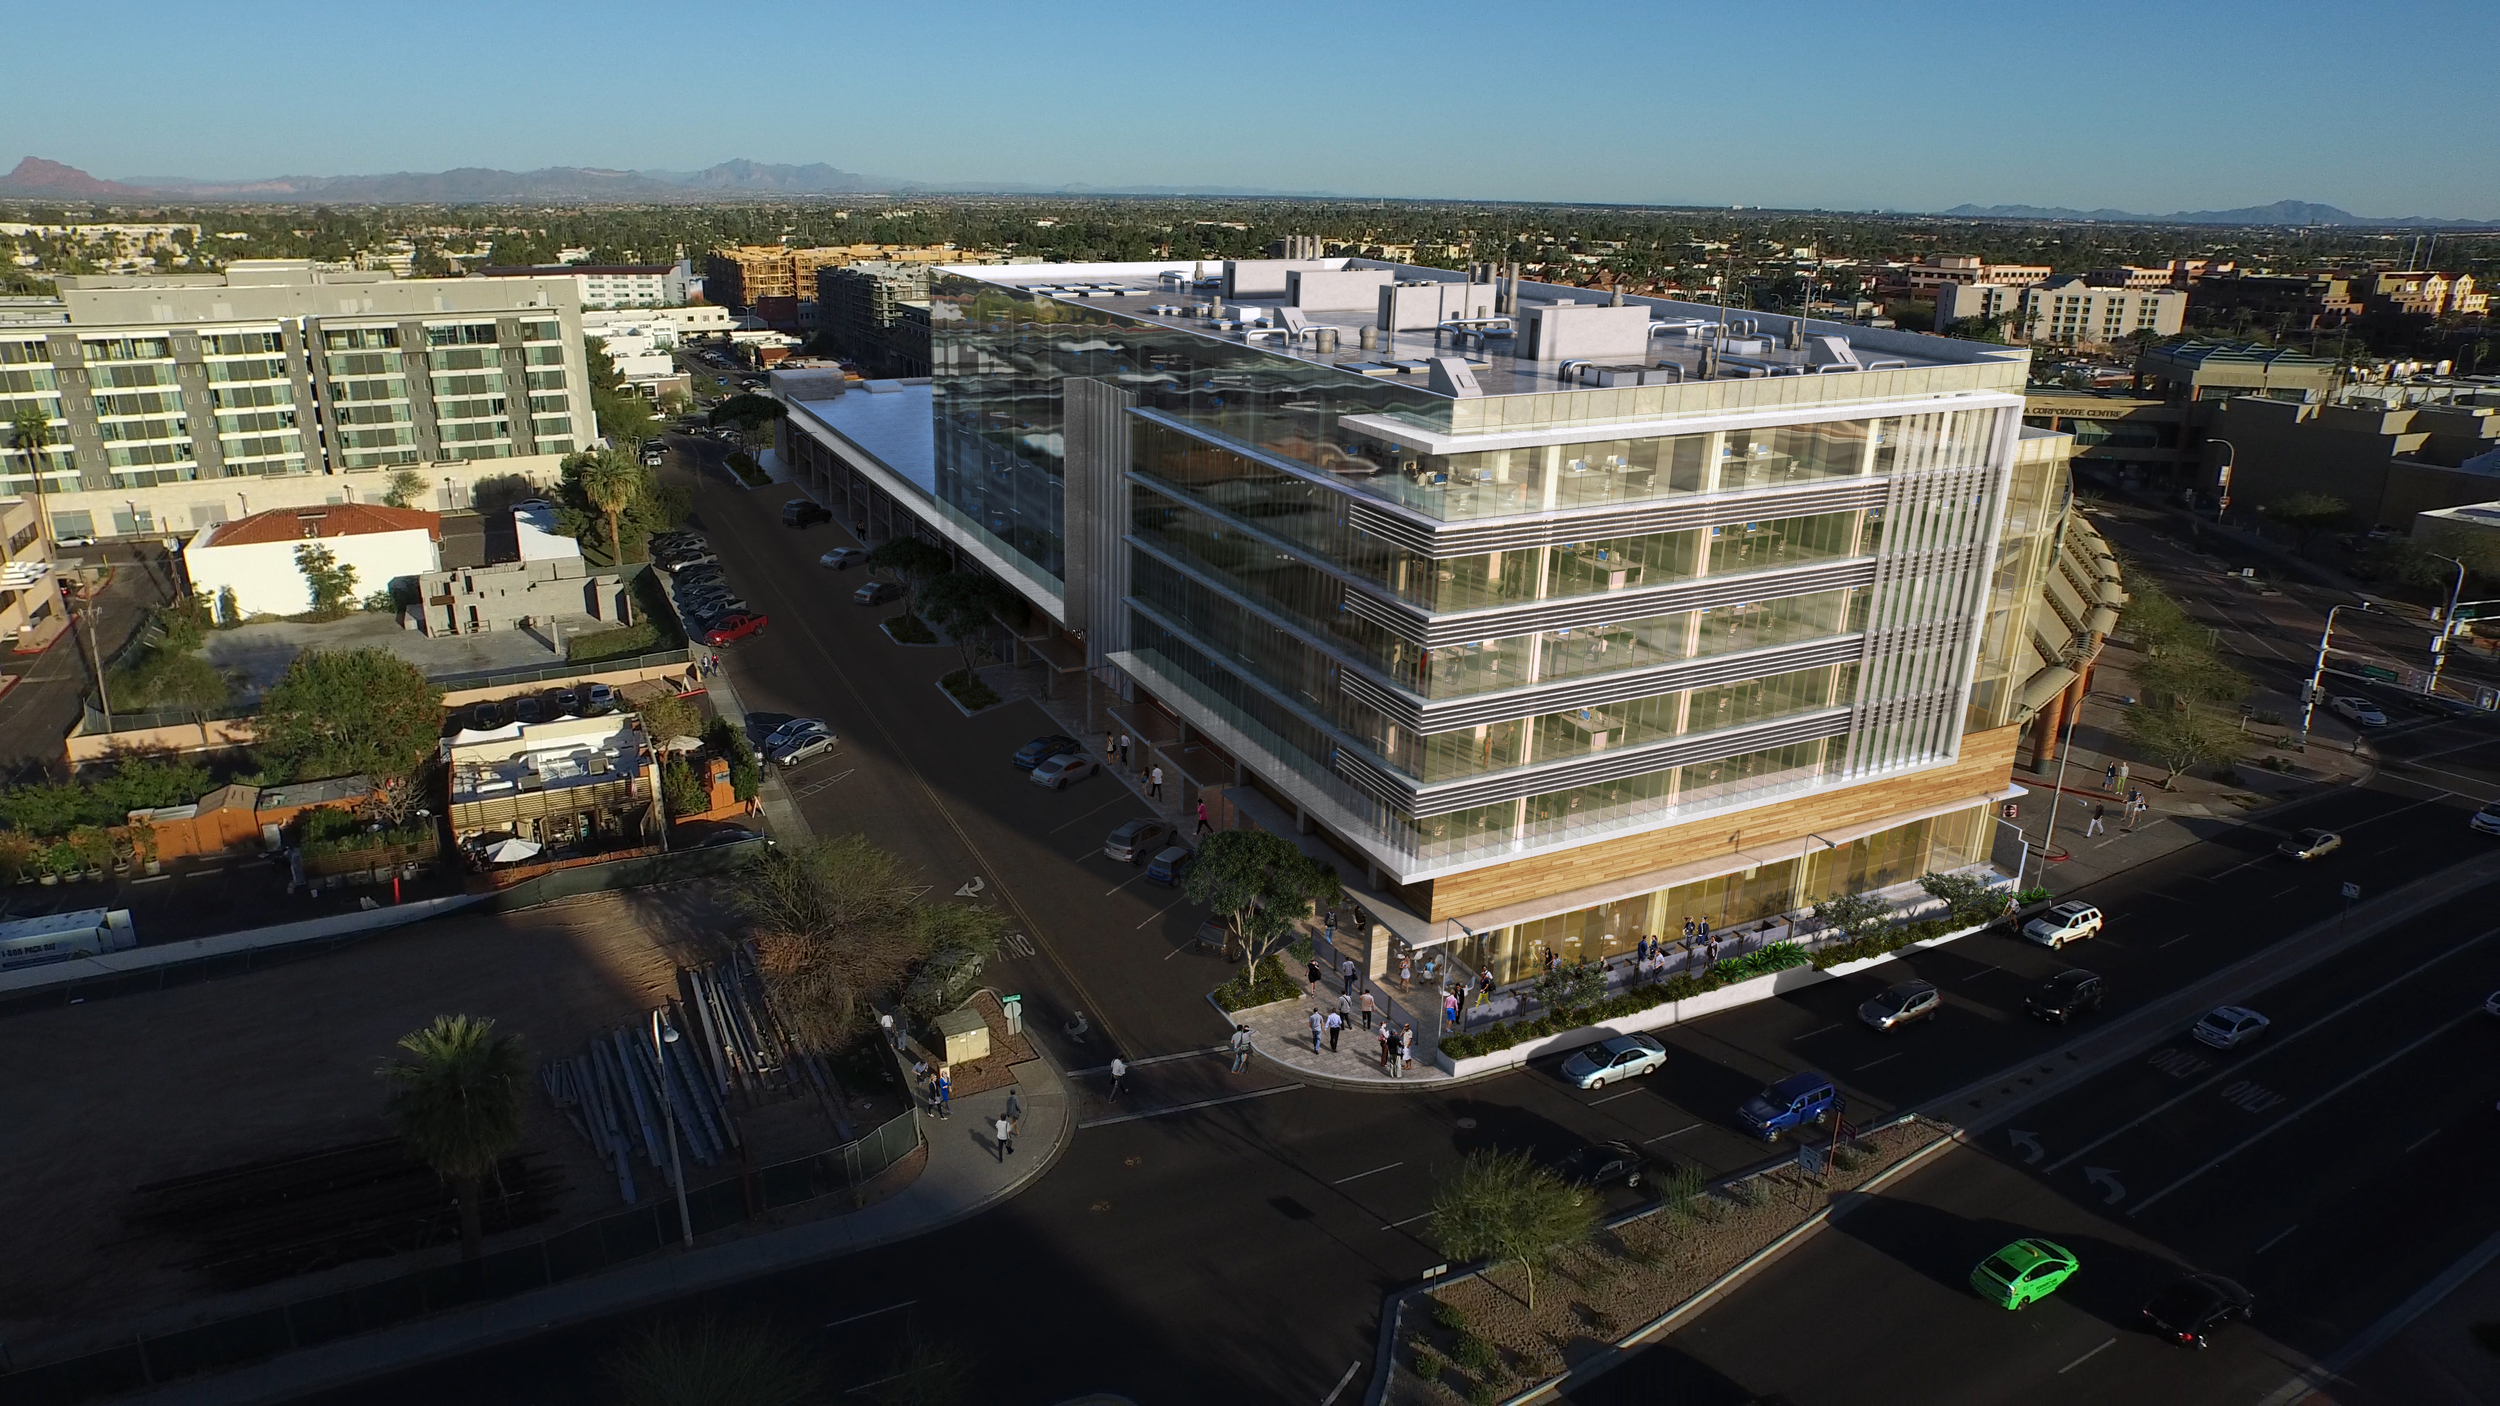 Marquee Scottsdale: The Address To Recruit Talent